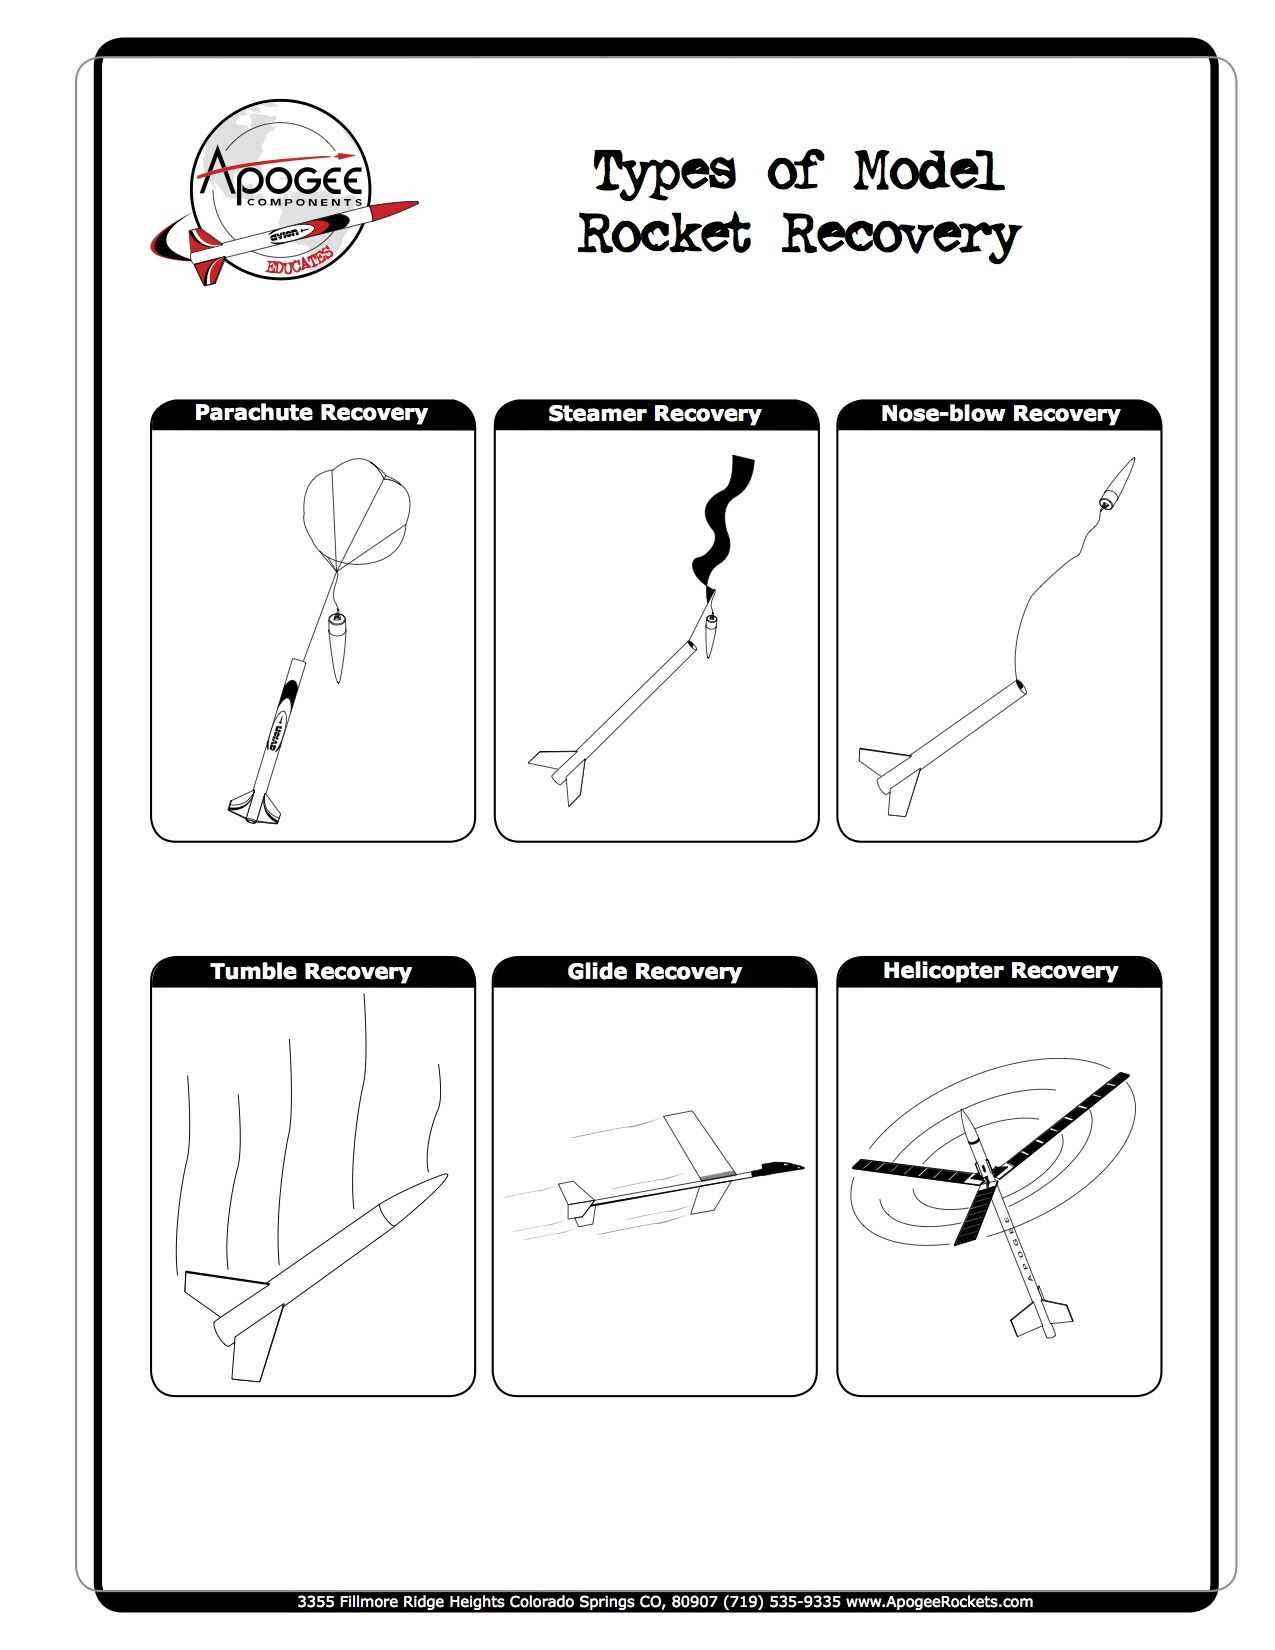 Types of Model Rocket Recovery: Parachute, Streamer, Nose